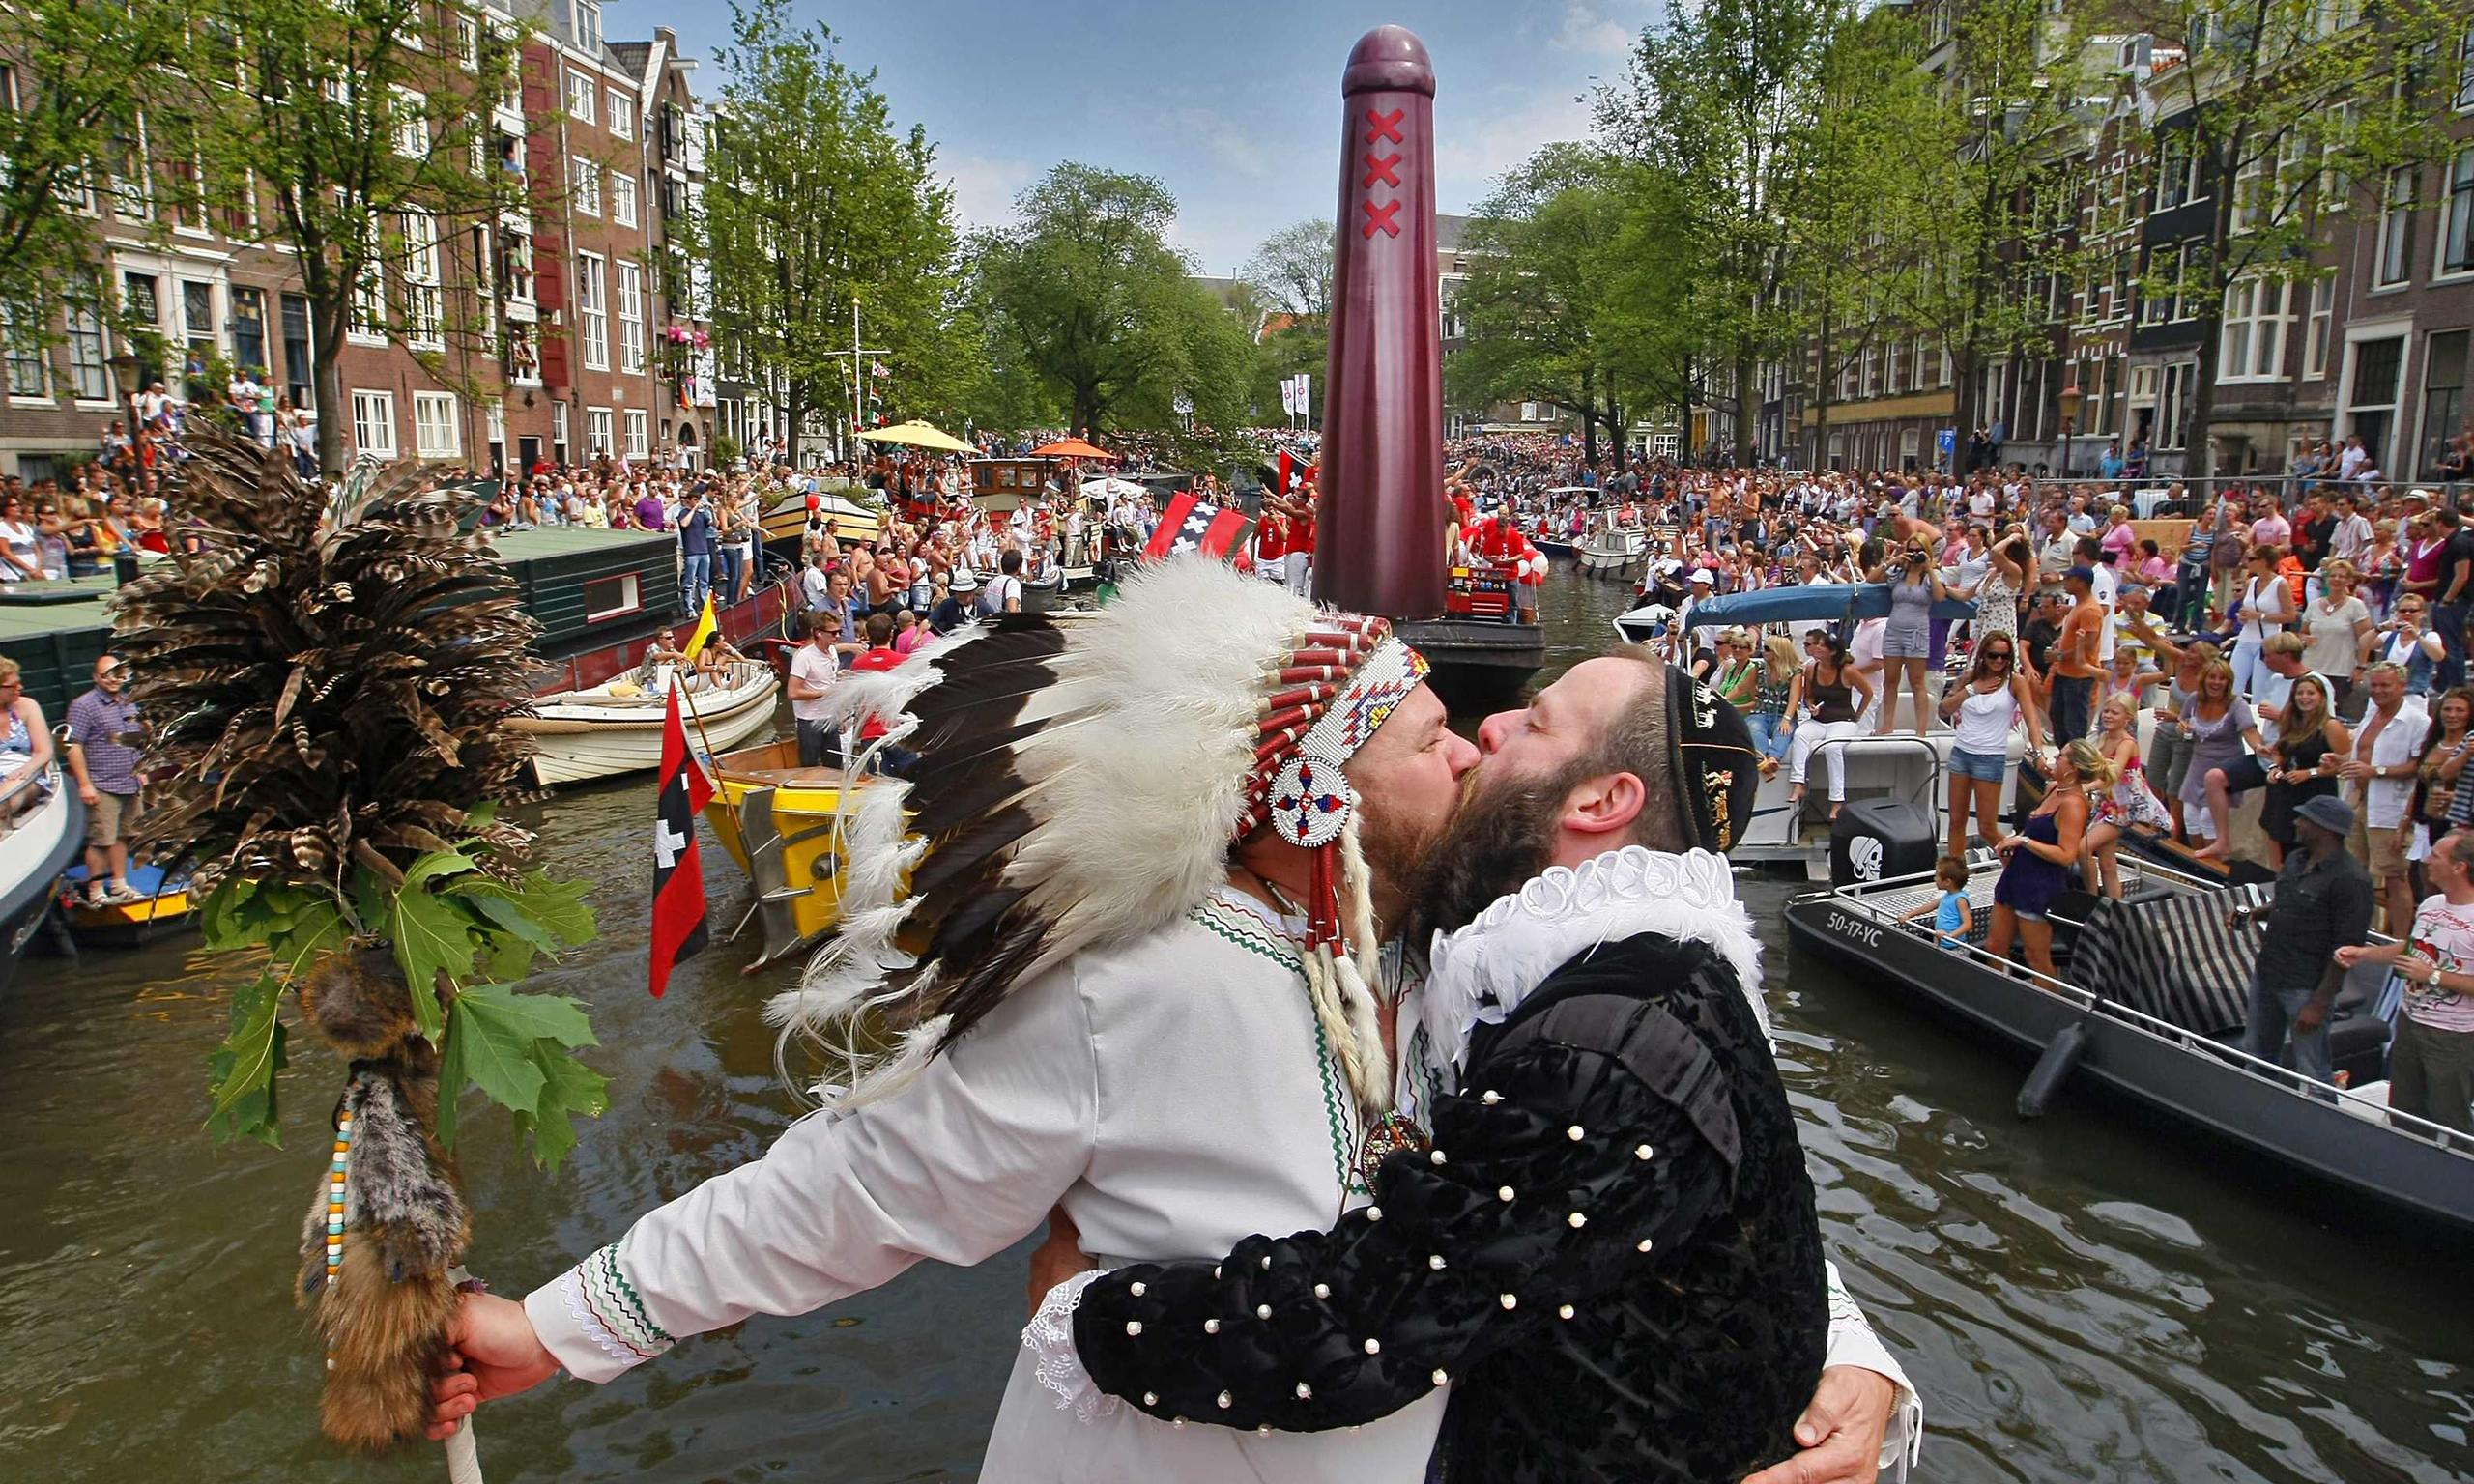 Dutch 'gay-only village' hoax fools press